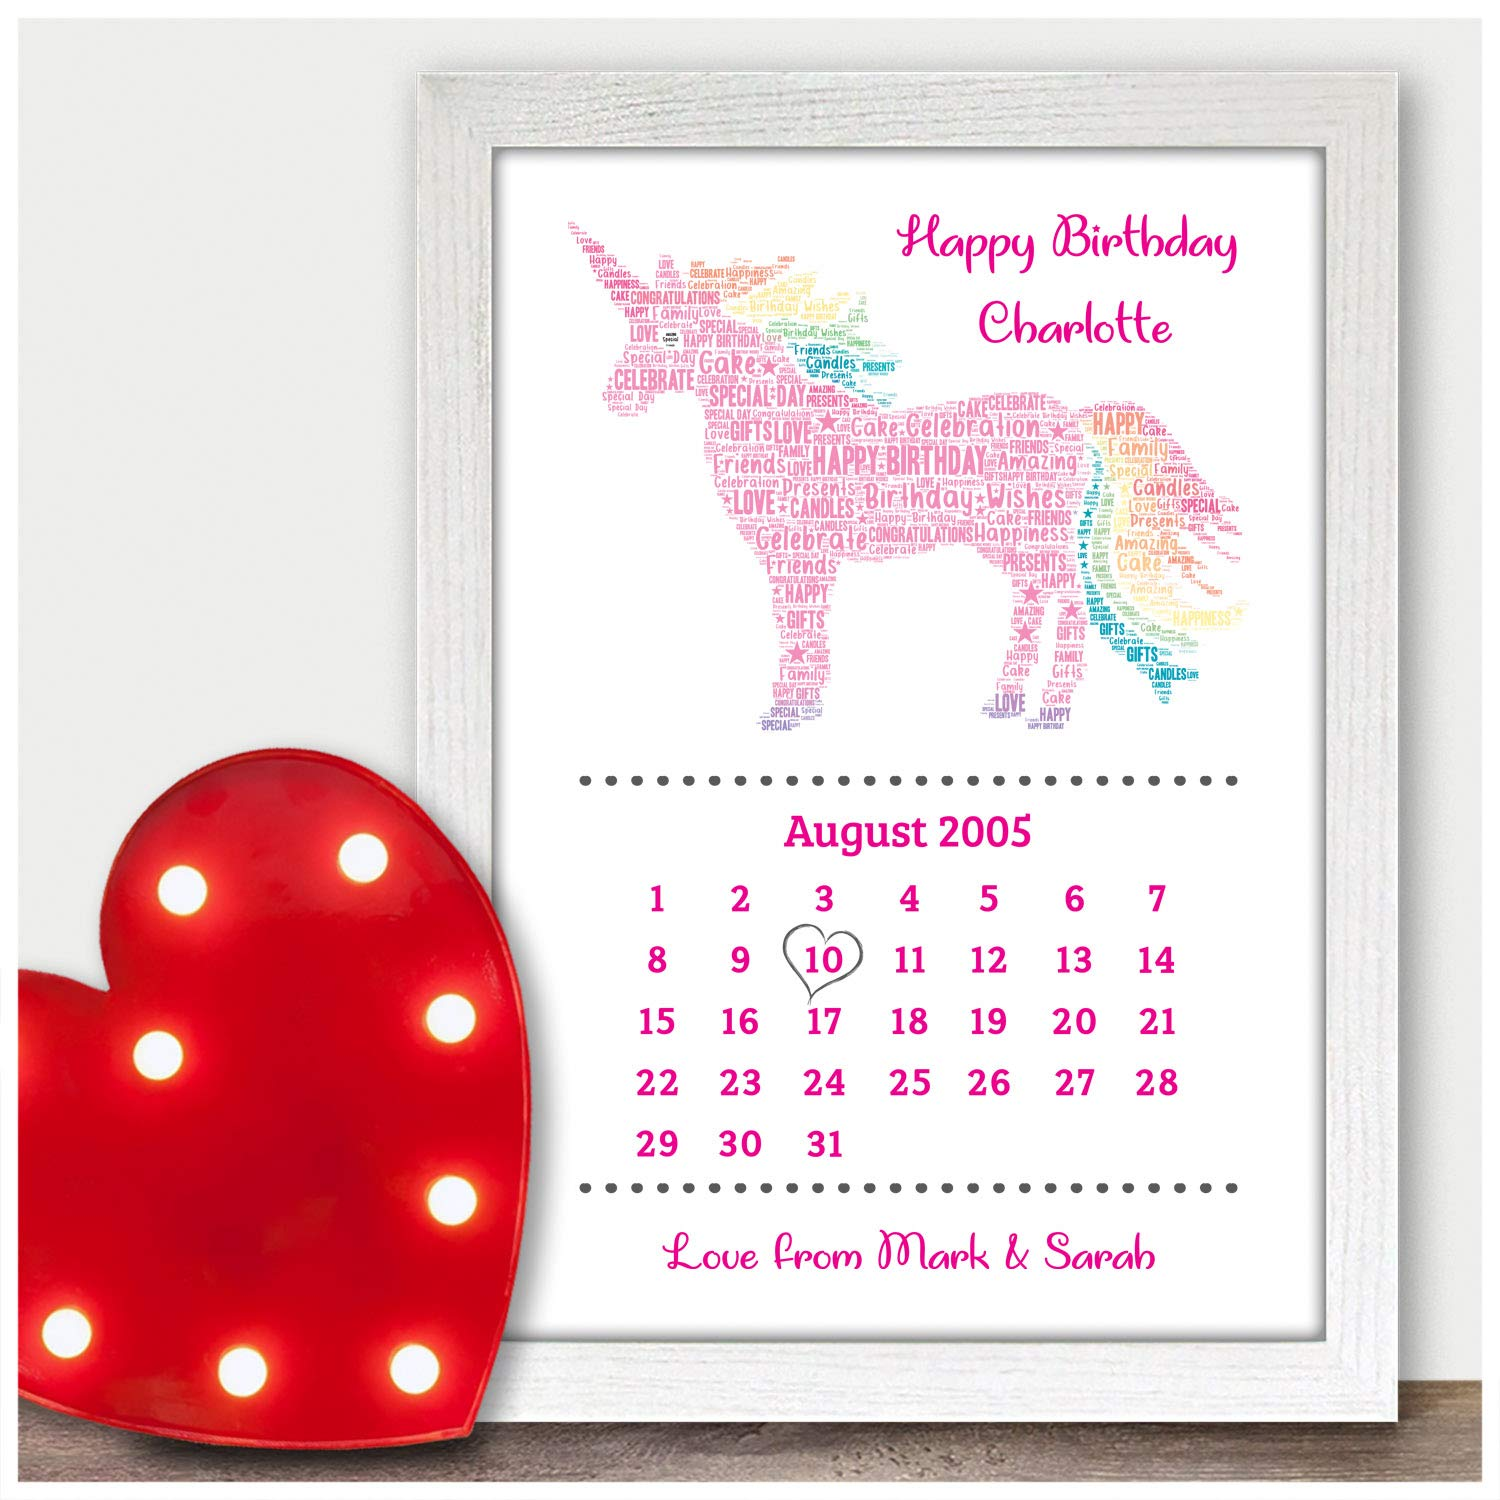 Personalised UNICORN Birthday Gifts For Girls Her Kids 5th 6th 9th 10th 11th 12th 13th 16th 18th Daughter Mum Niece Granddaughter Best